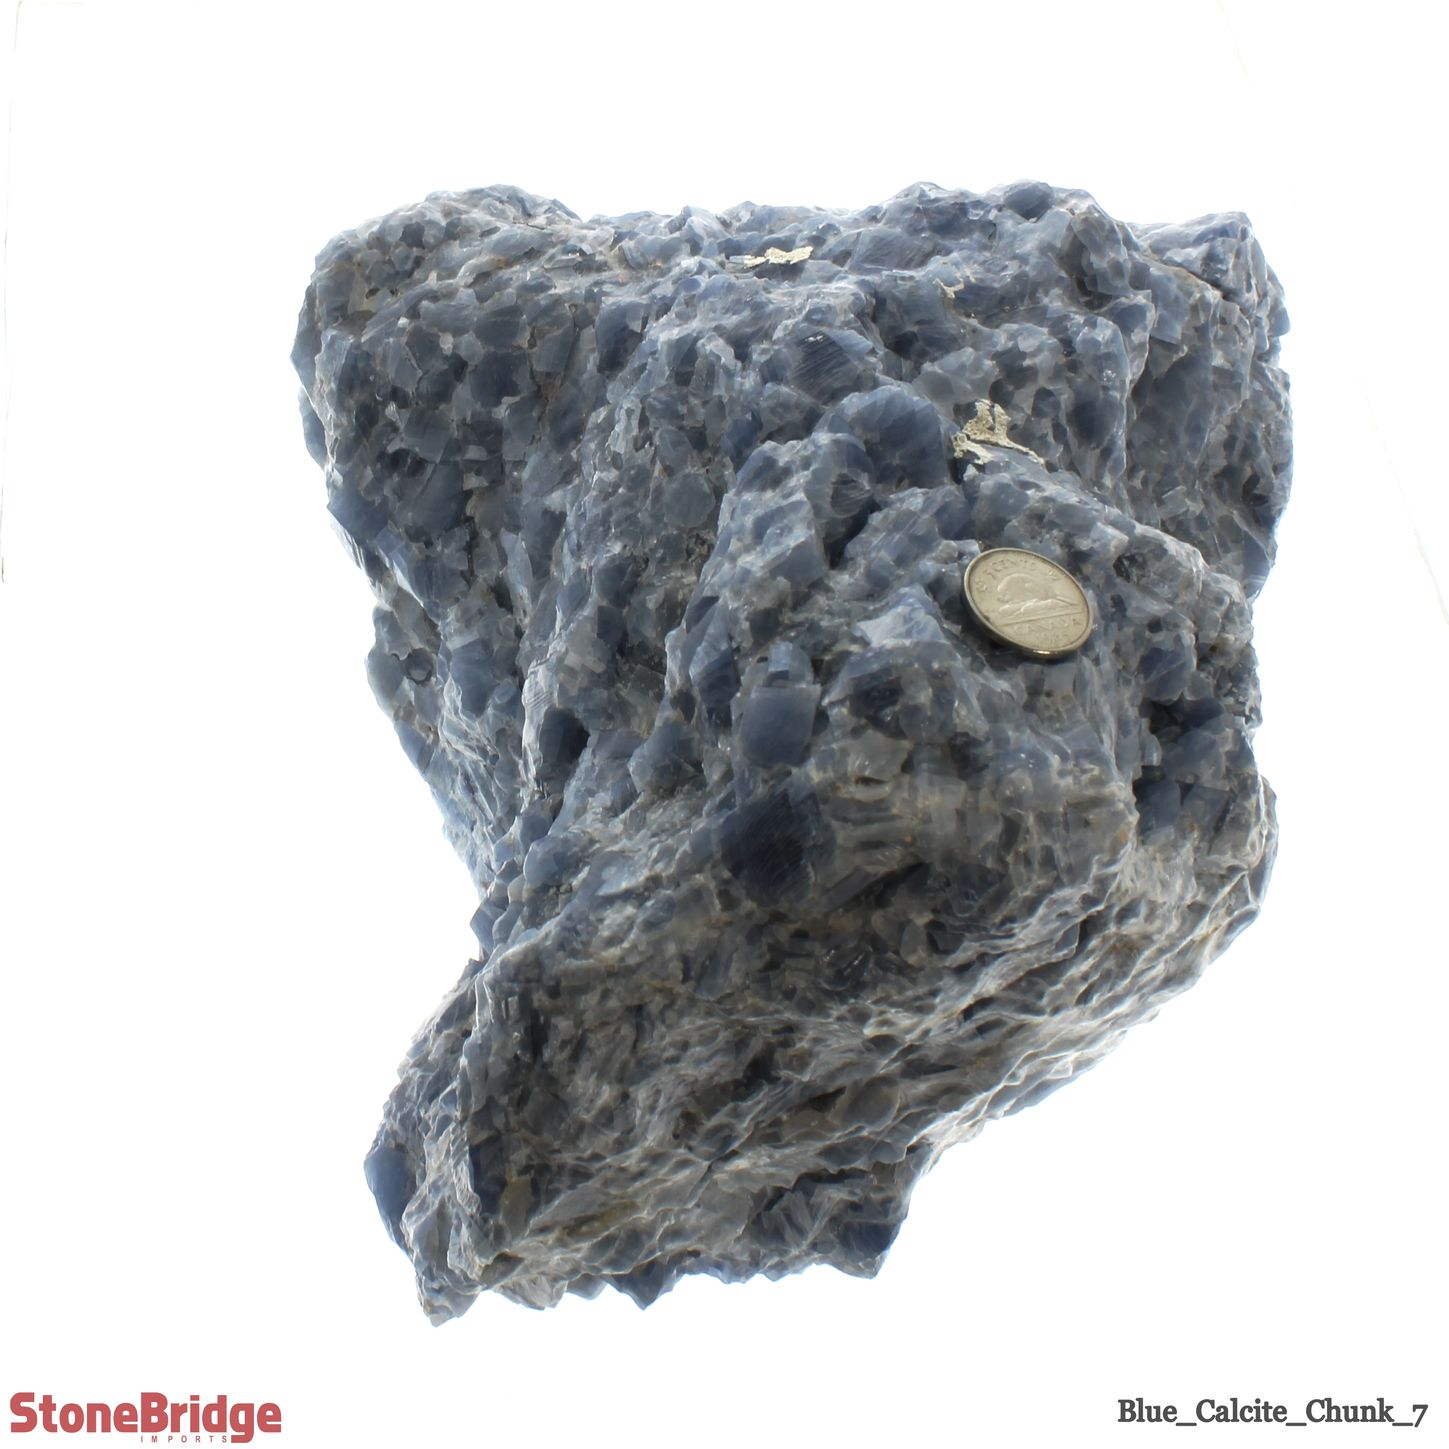 Blue Calcite Chunk Size #7 - 10kg to 15kg